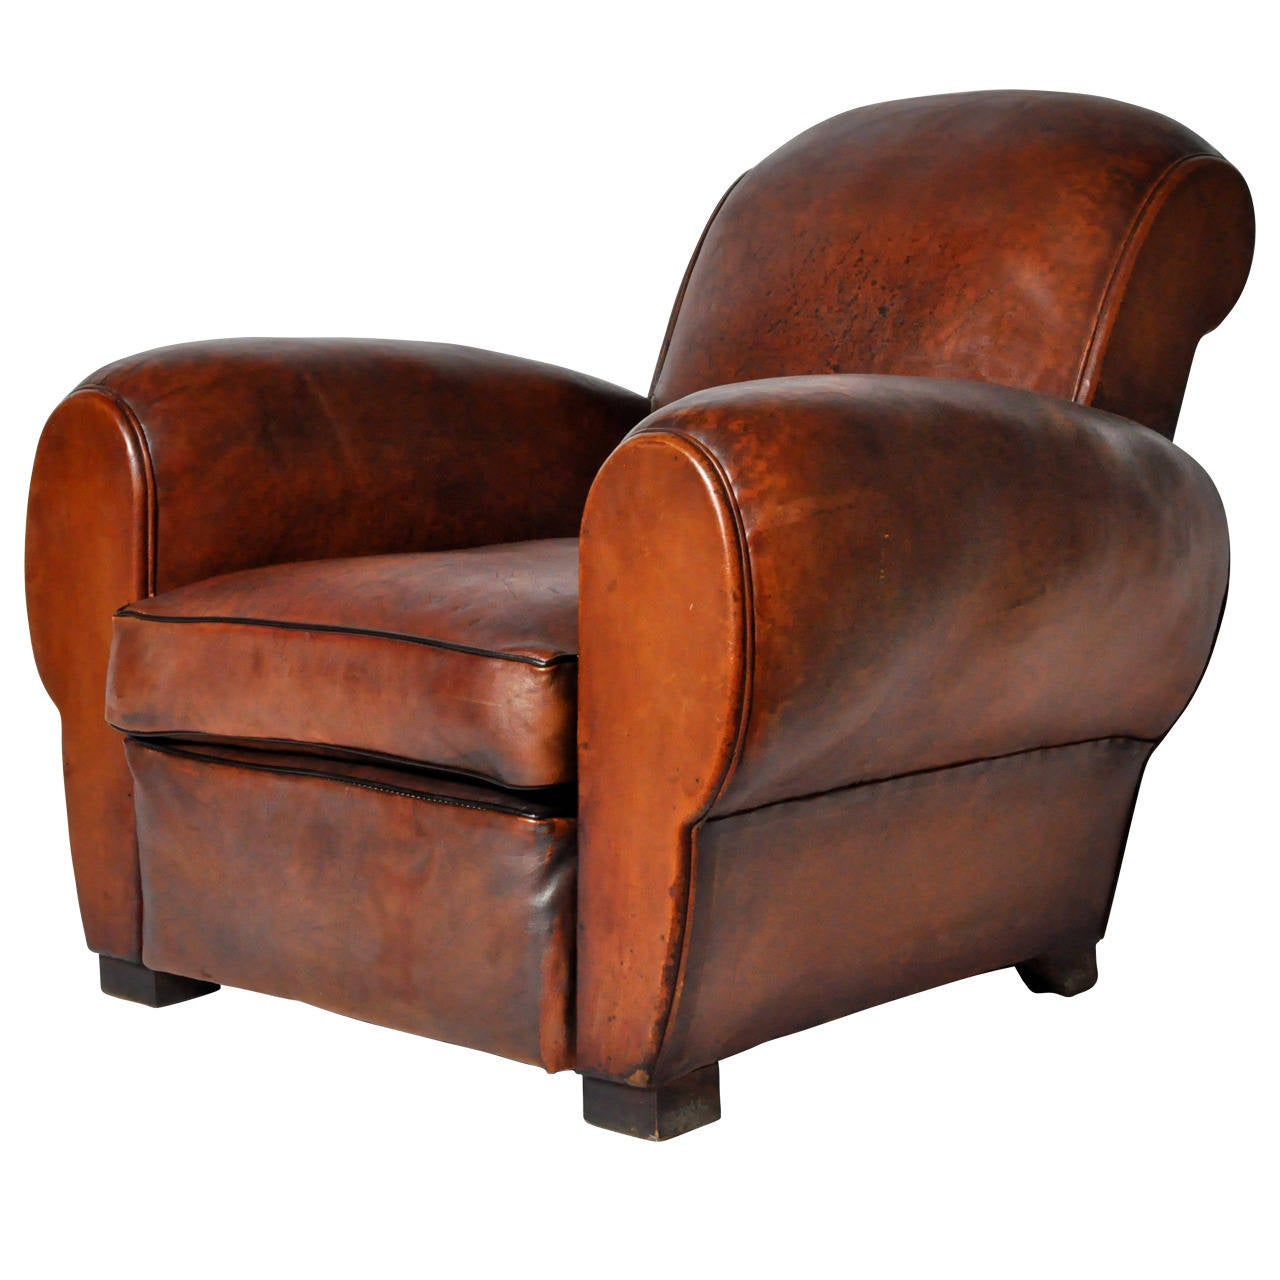 Vintage french leather club chair at 1stdibs for Furniture chairs